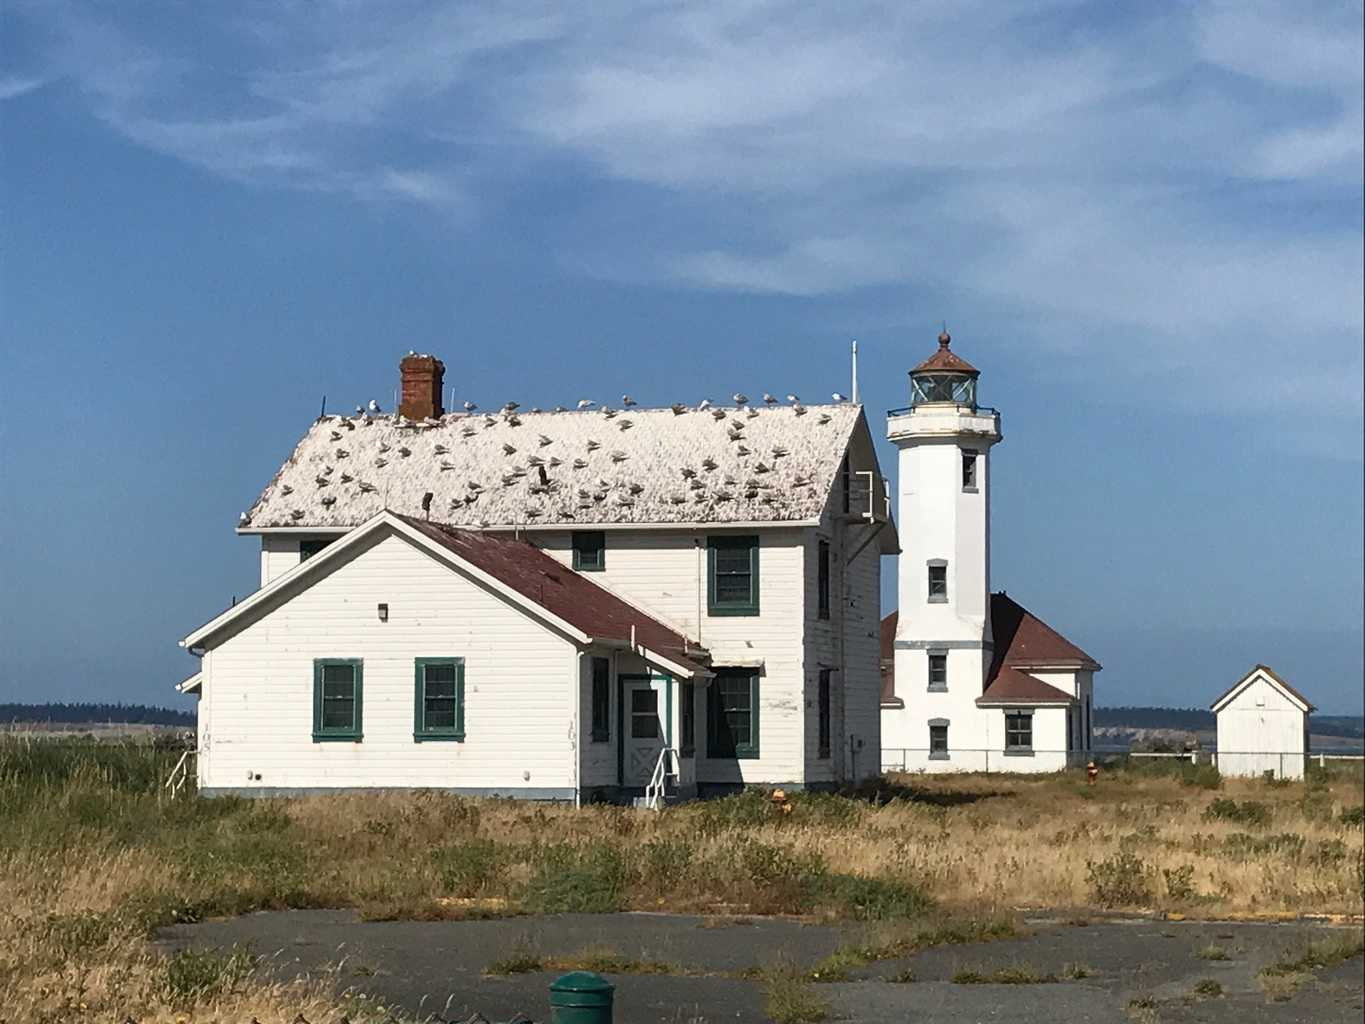 Are you planning a vacation to Washington State? Check out these Top 5 Not-To-Miss Places To Visit in Washington while touring the area.